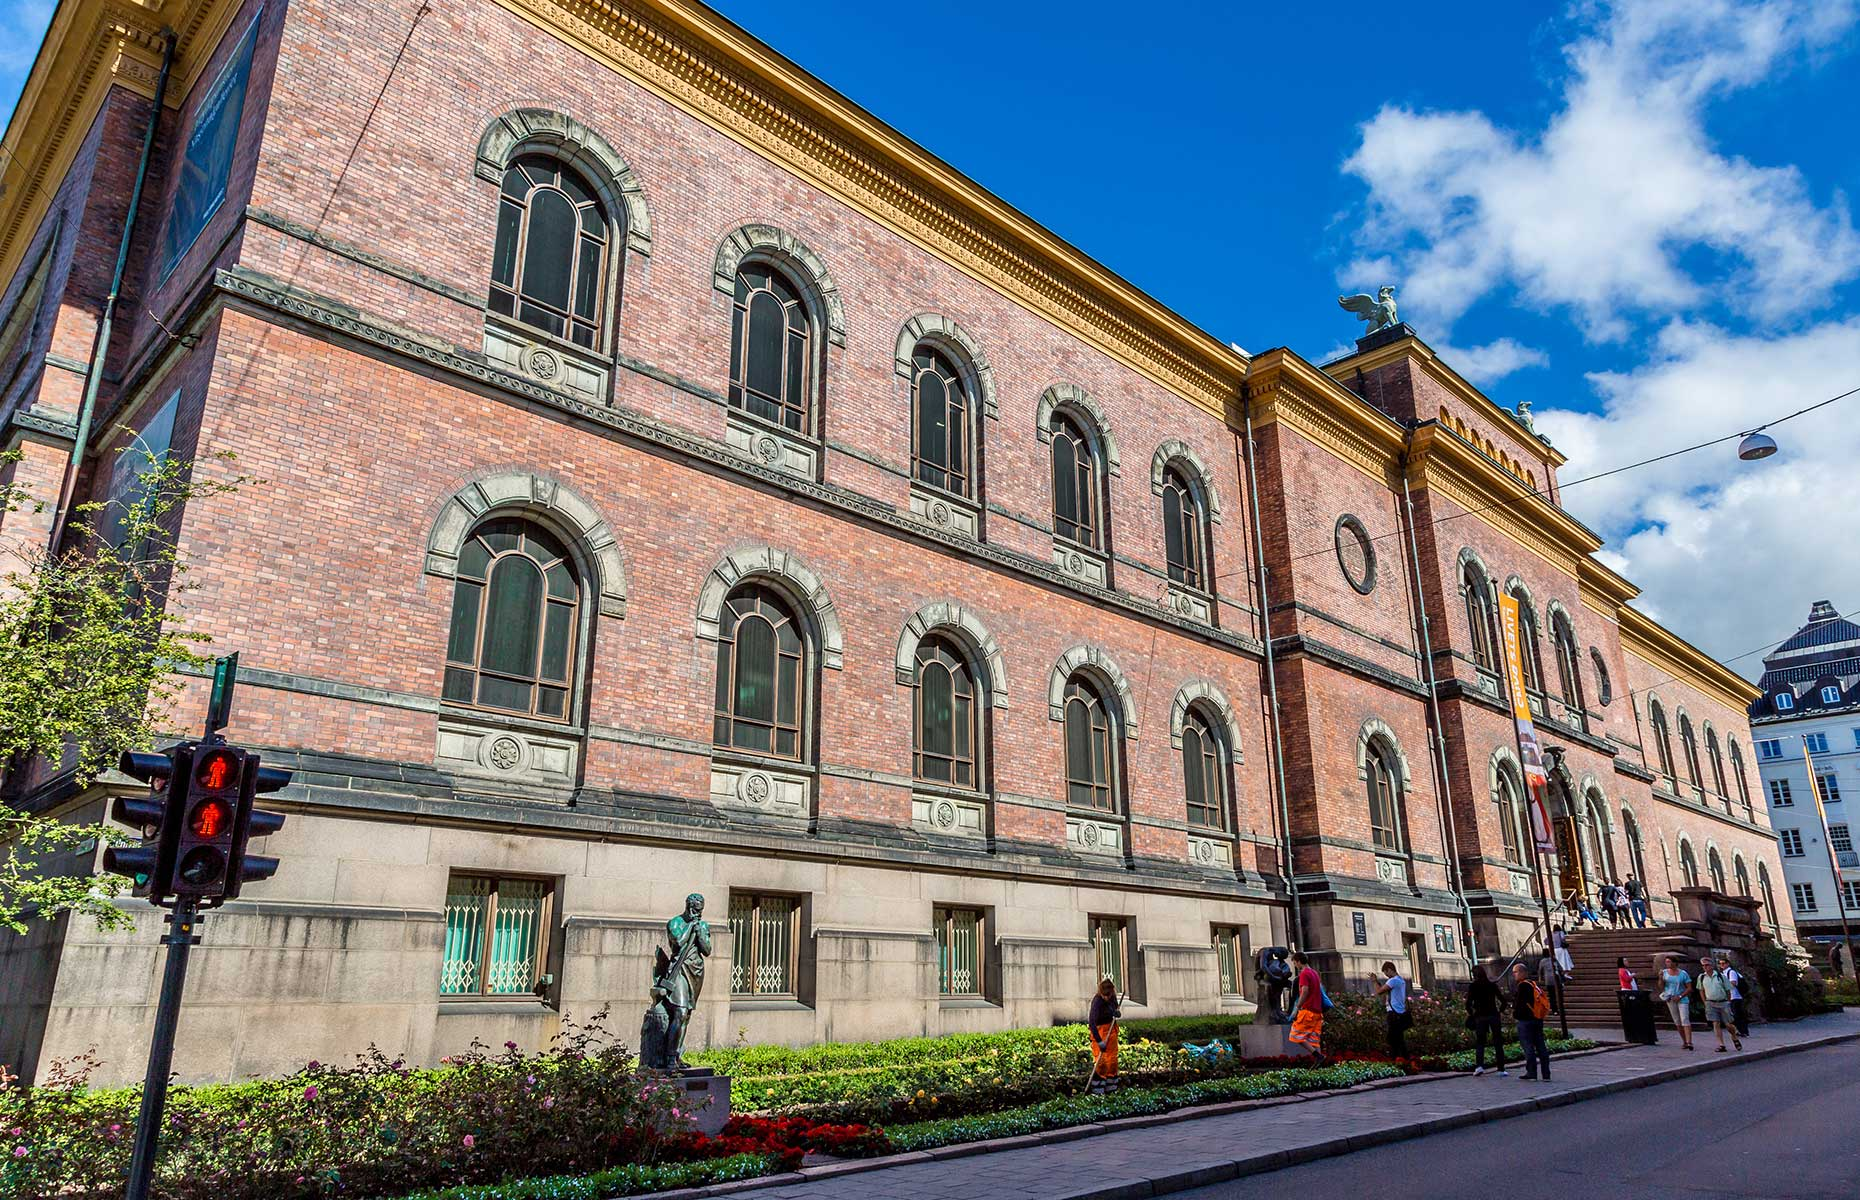 Oslo National Gallery (Image: S-F/Shutterstock)